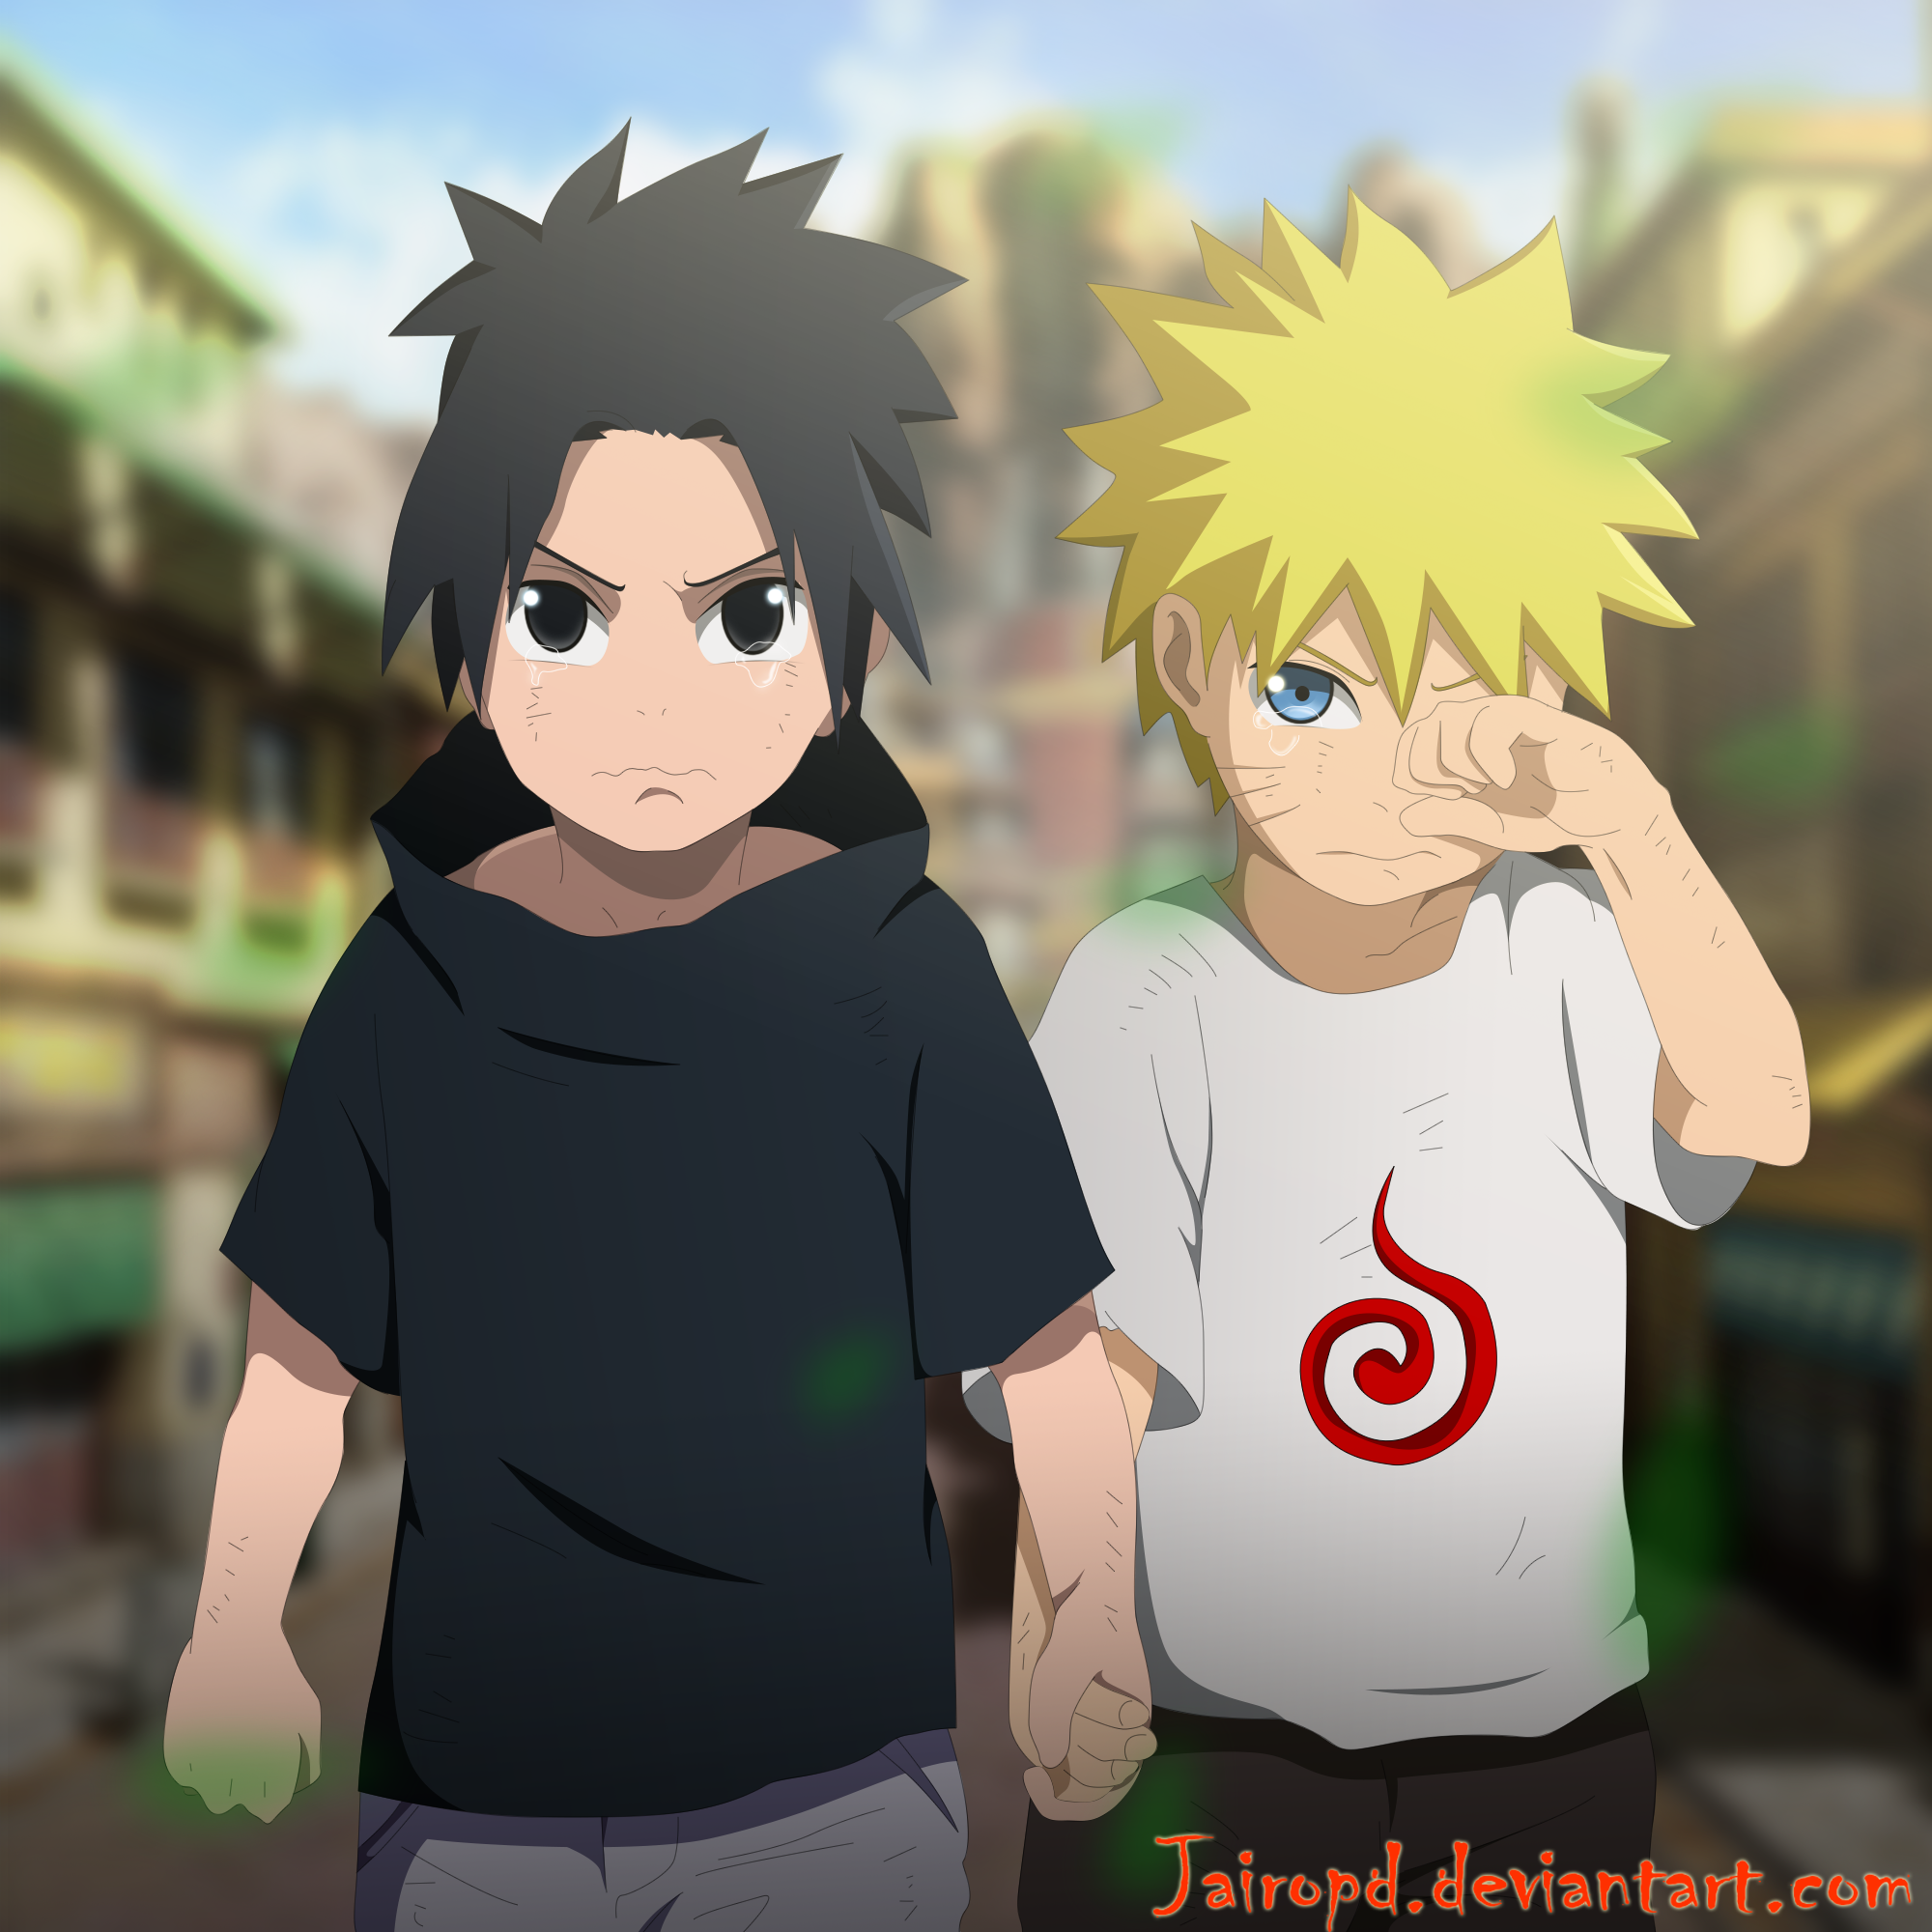 Image Result For Naruto And Sasuke Friends Forever